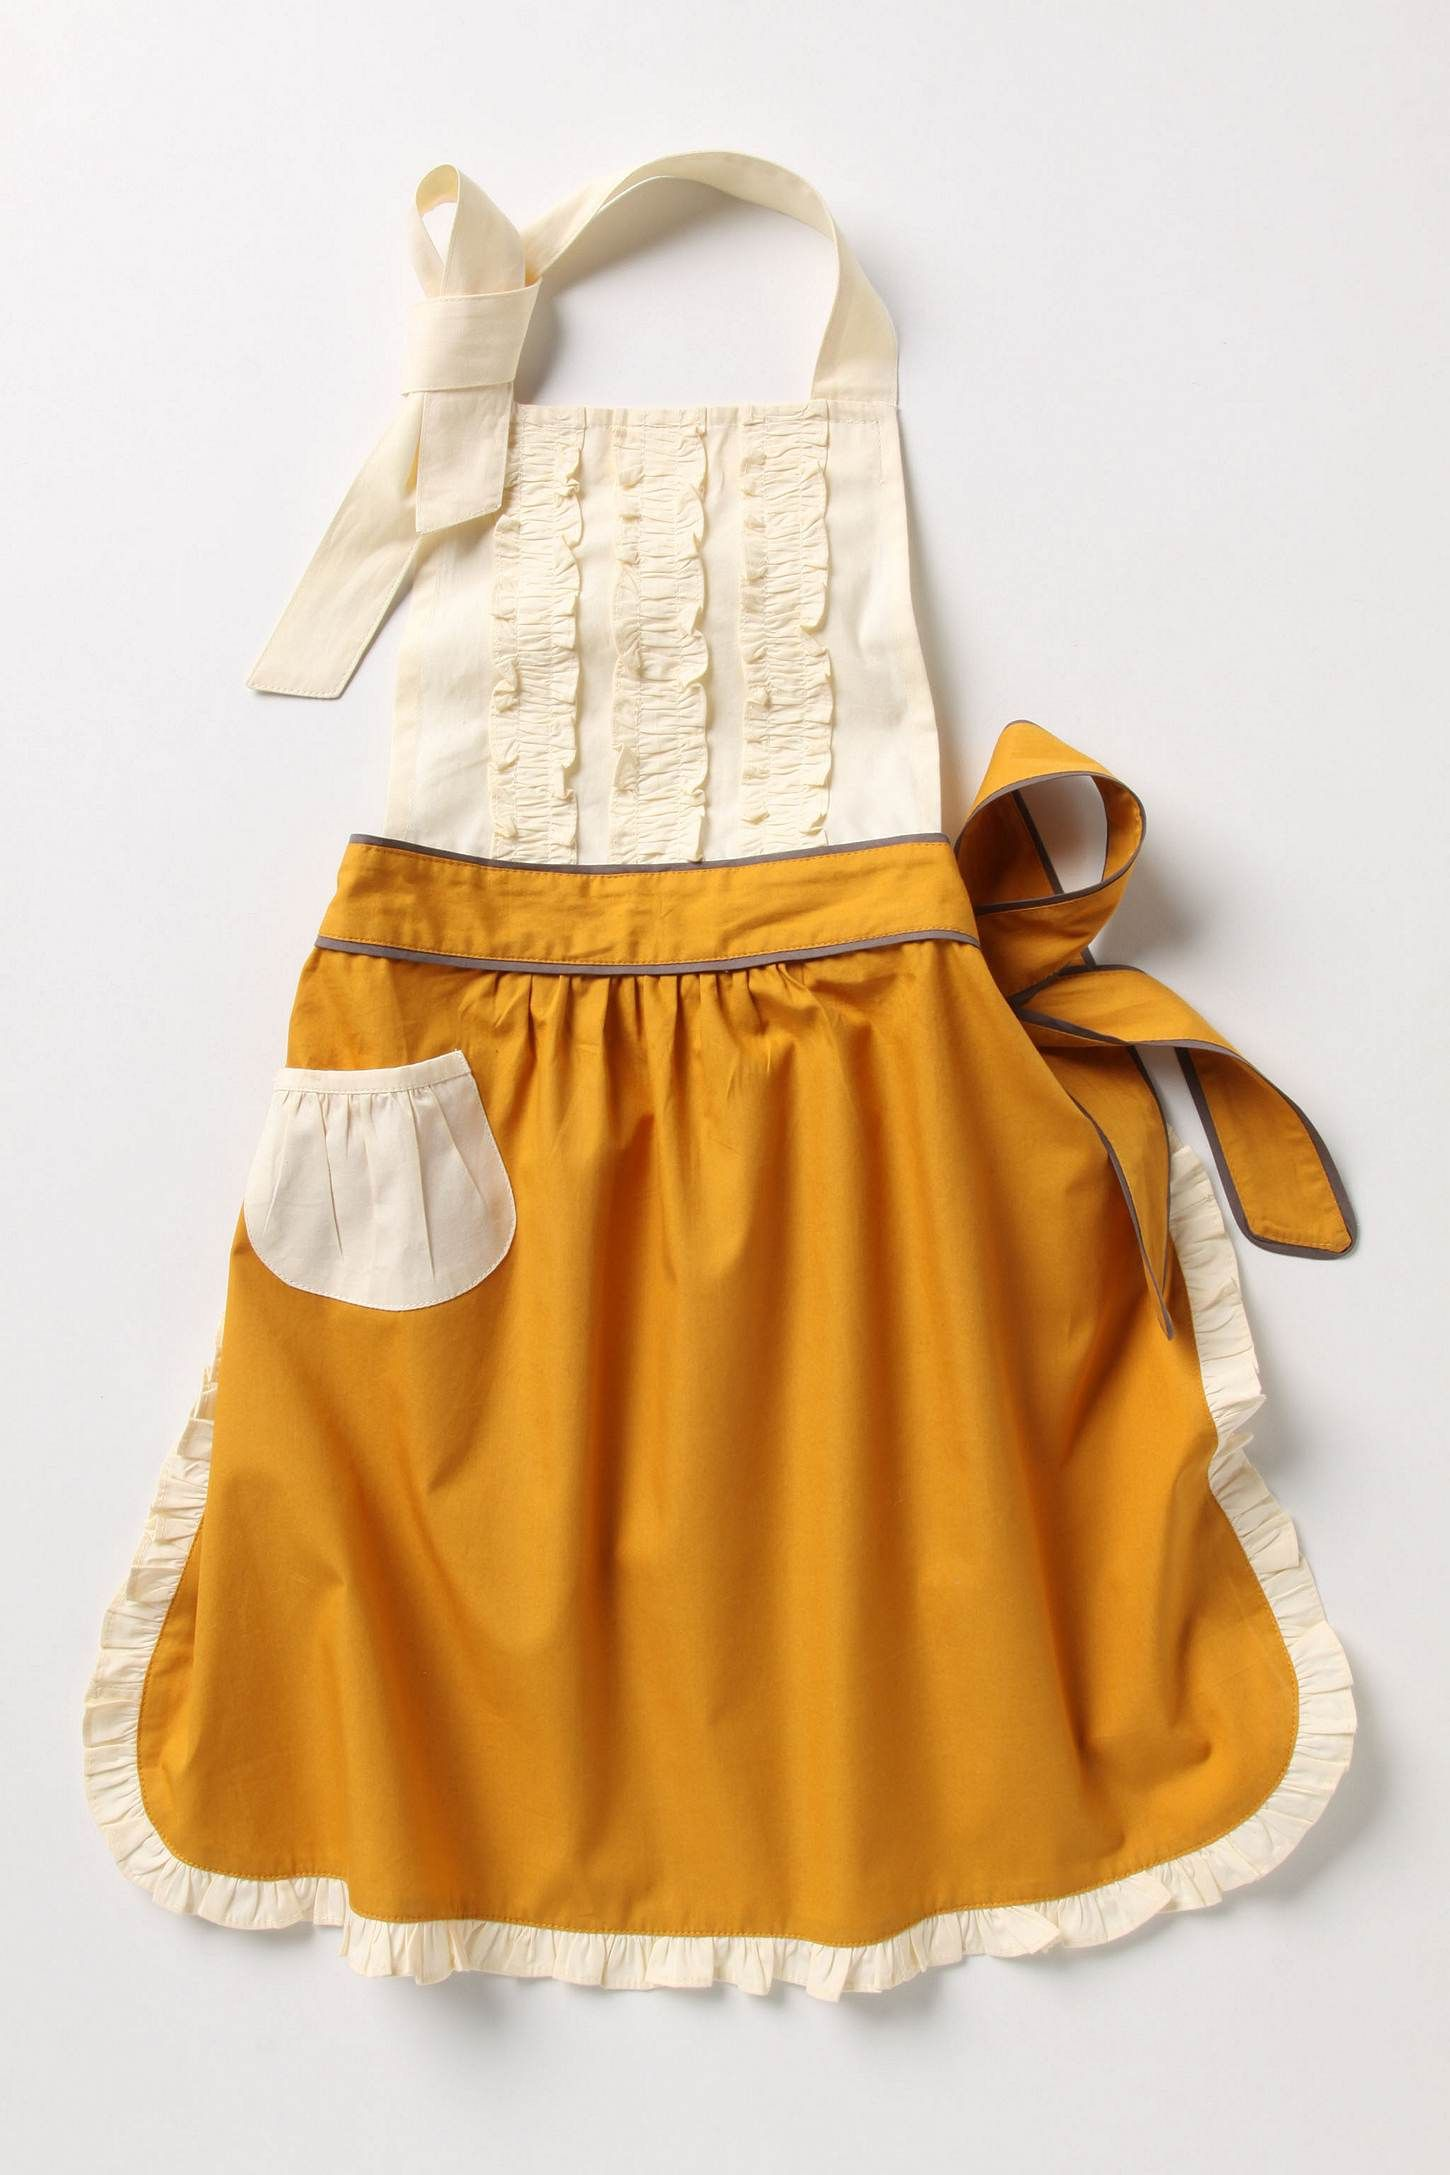 Awww this little girl's apron is darling!